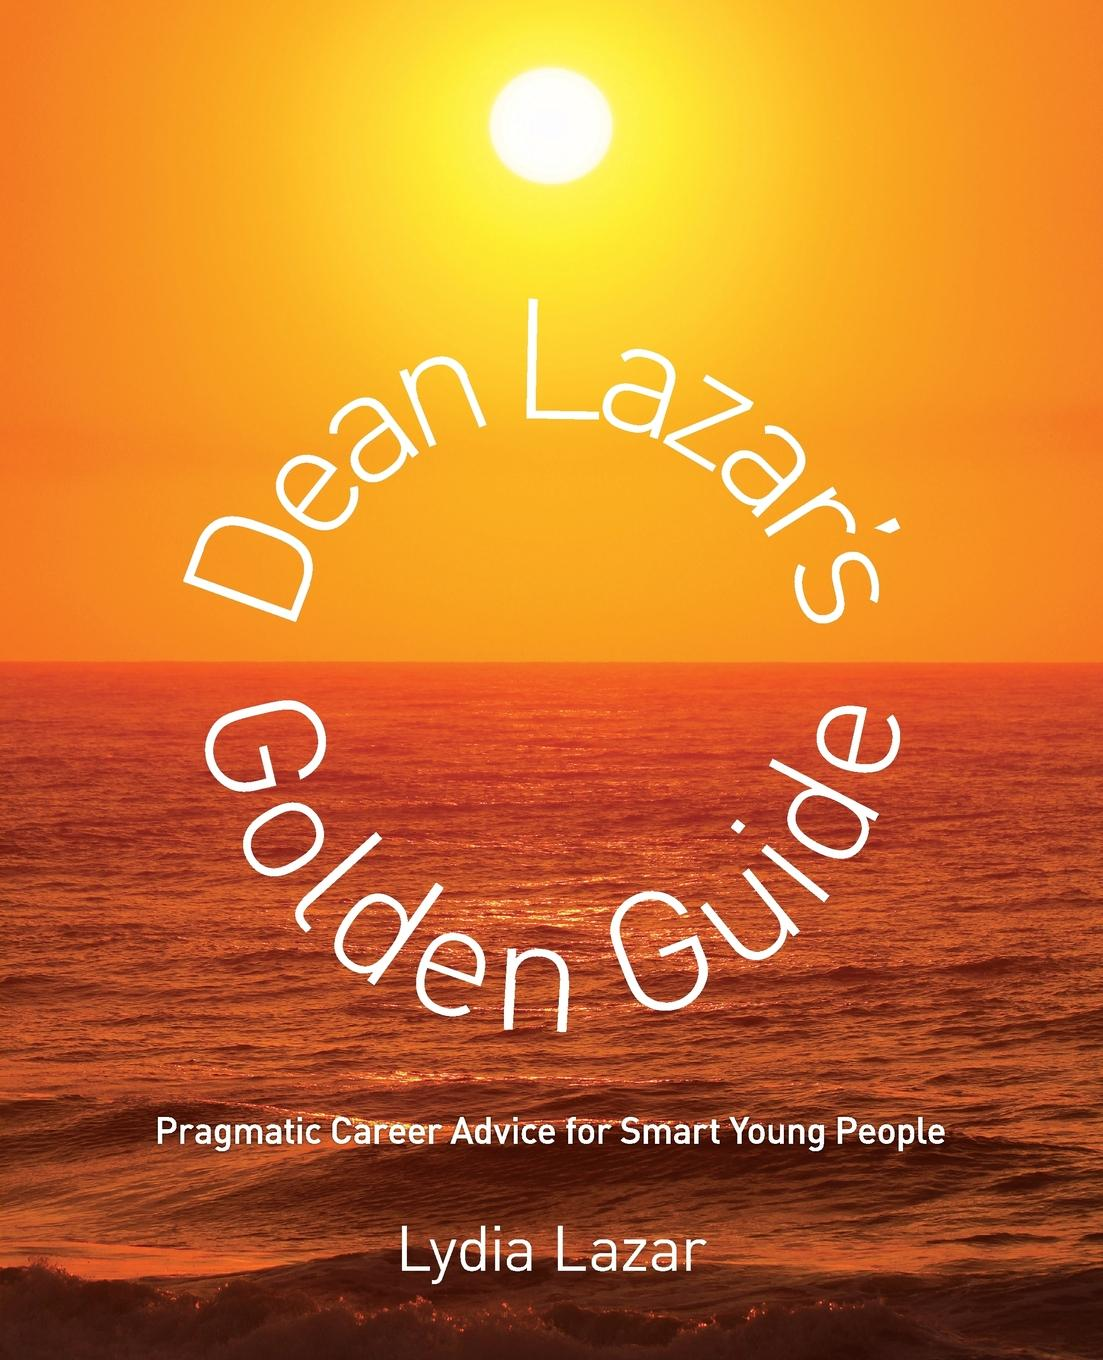 Lydia Lazar Dean Lazar.s Golden Guide. Pragmatic Career Advice for Smart Young People lazar khidekel and suprematism